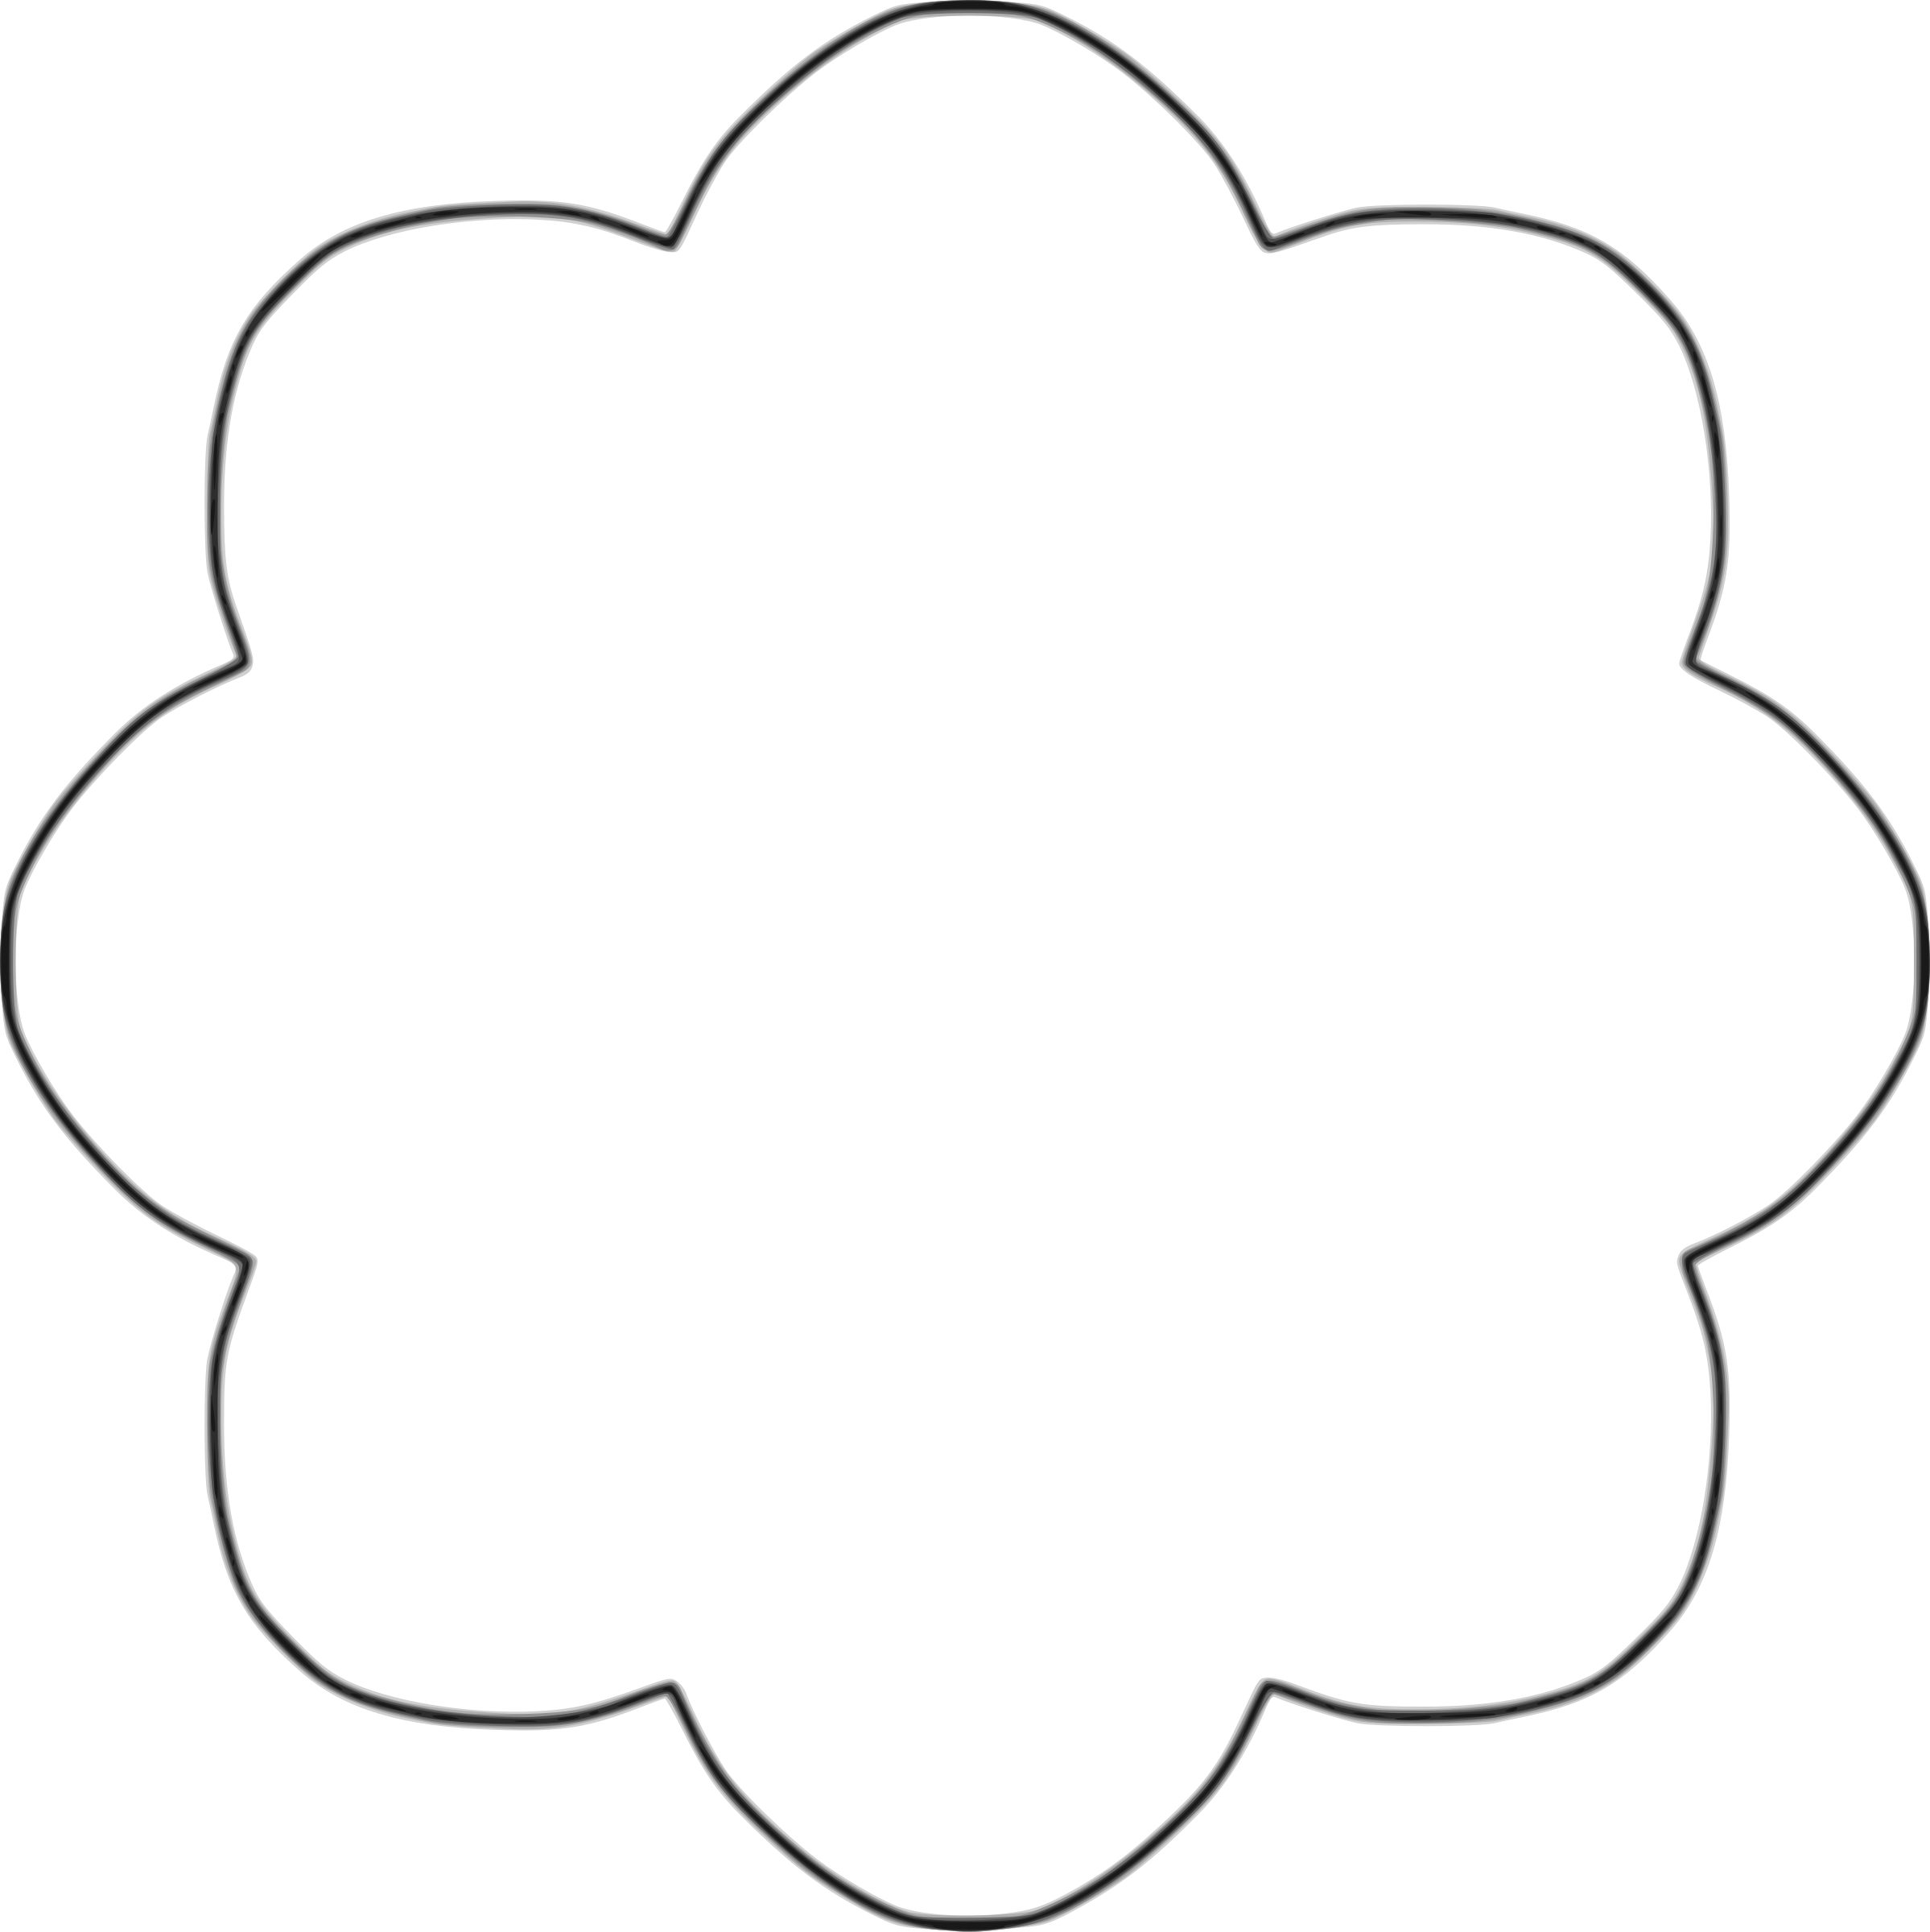 Shell clipart scallop stencil.  images of scalloped